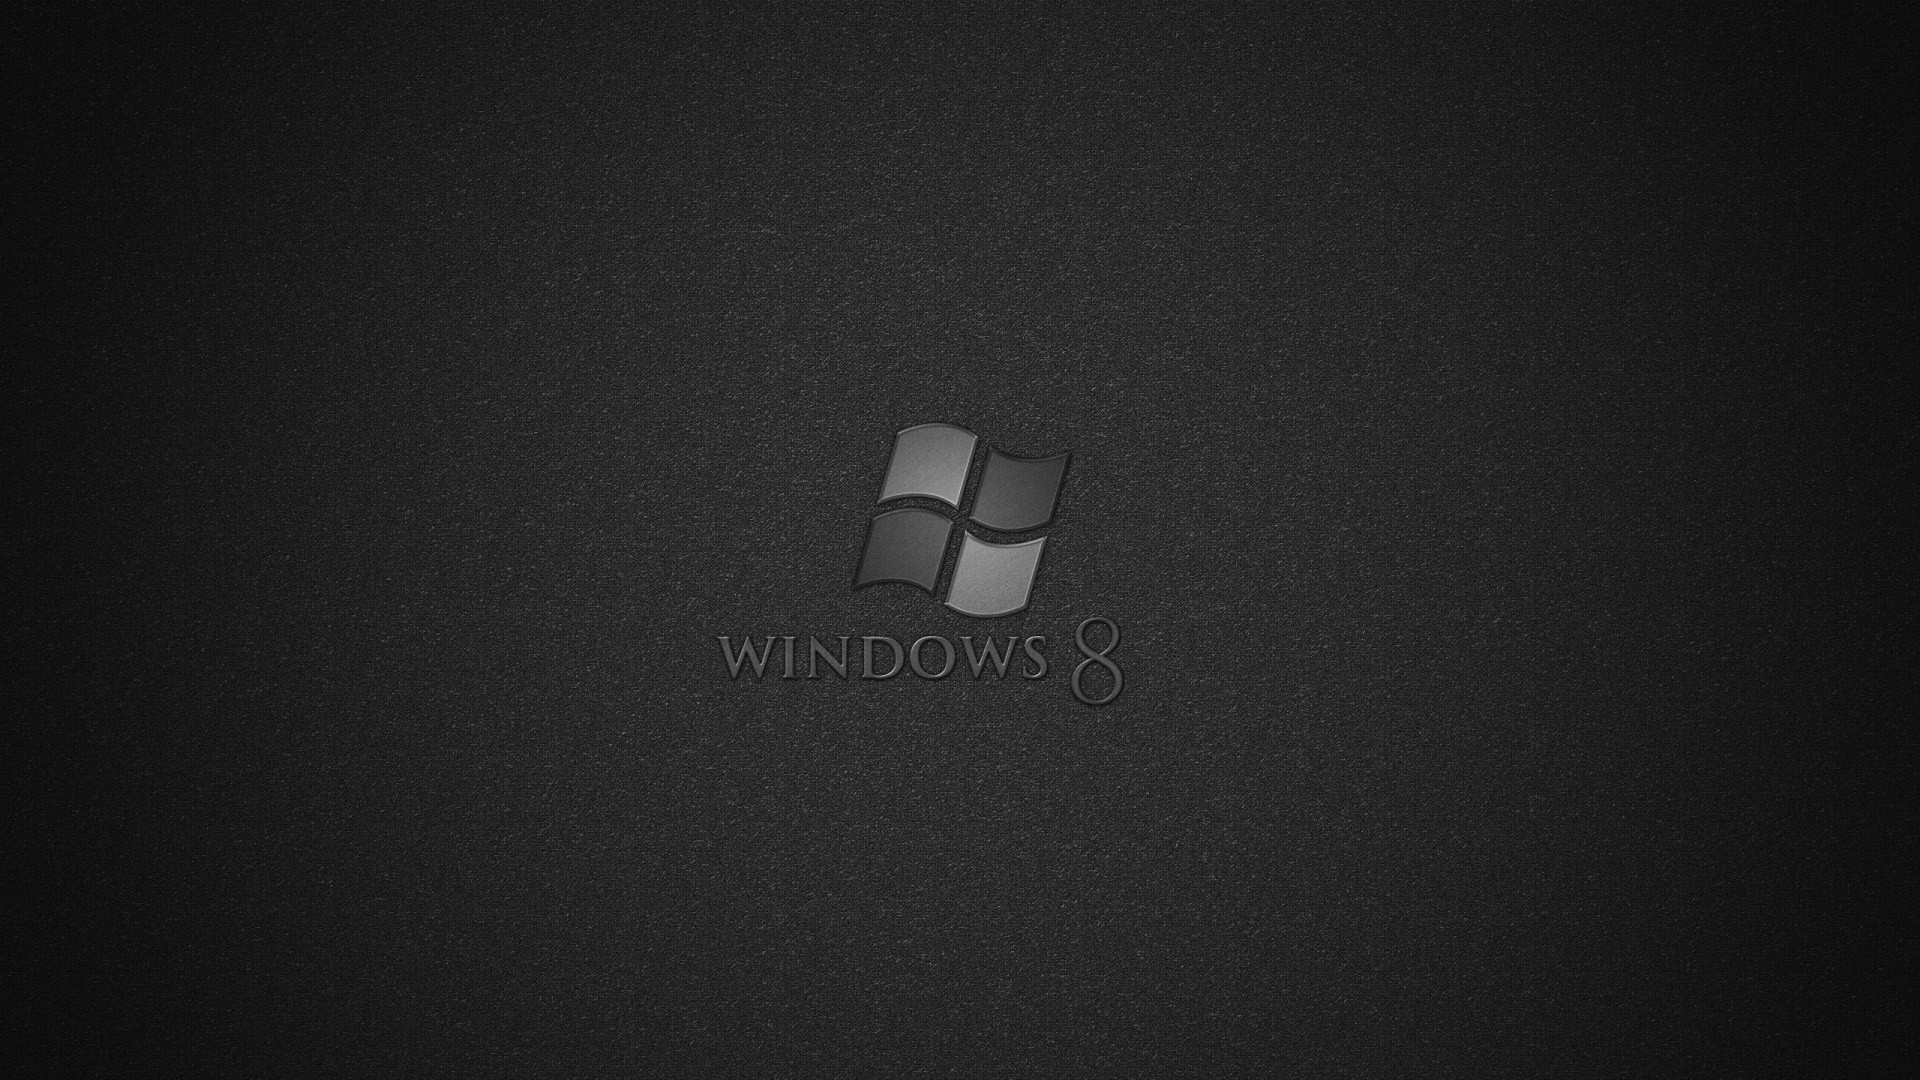 windows hd wallpaper download background and desktop 1920a—1080